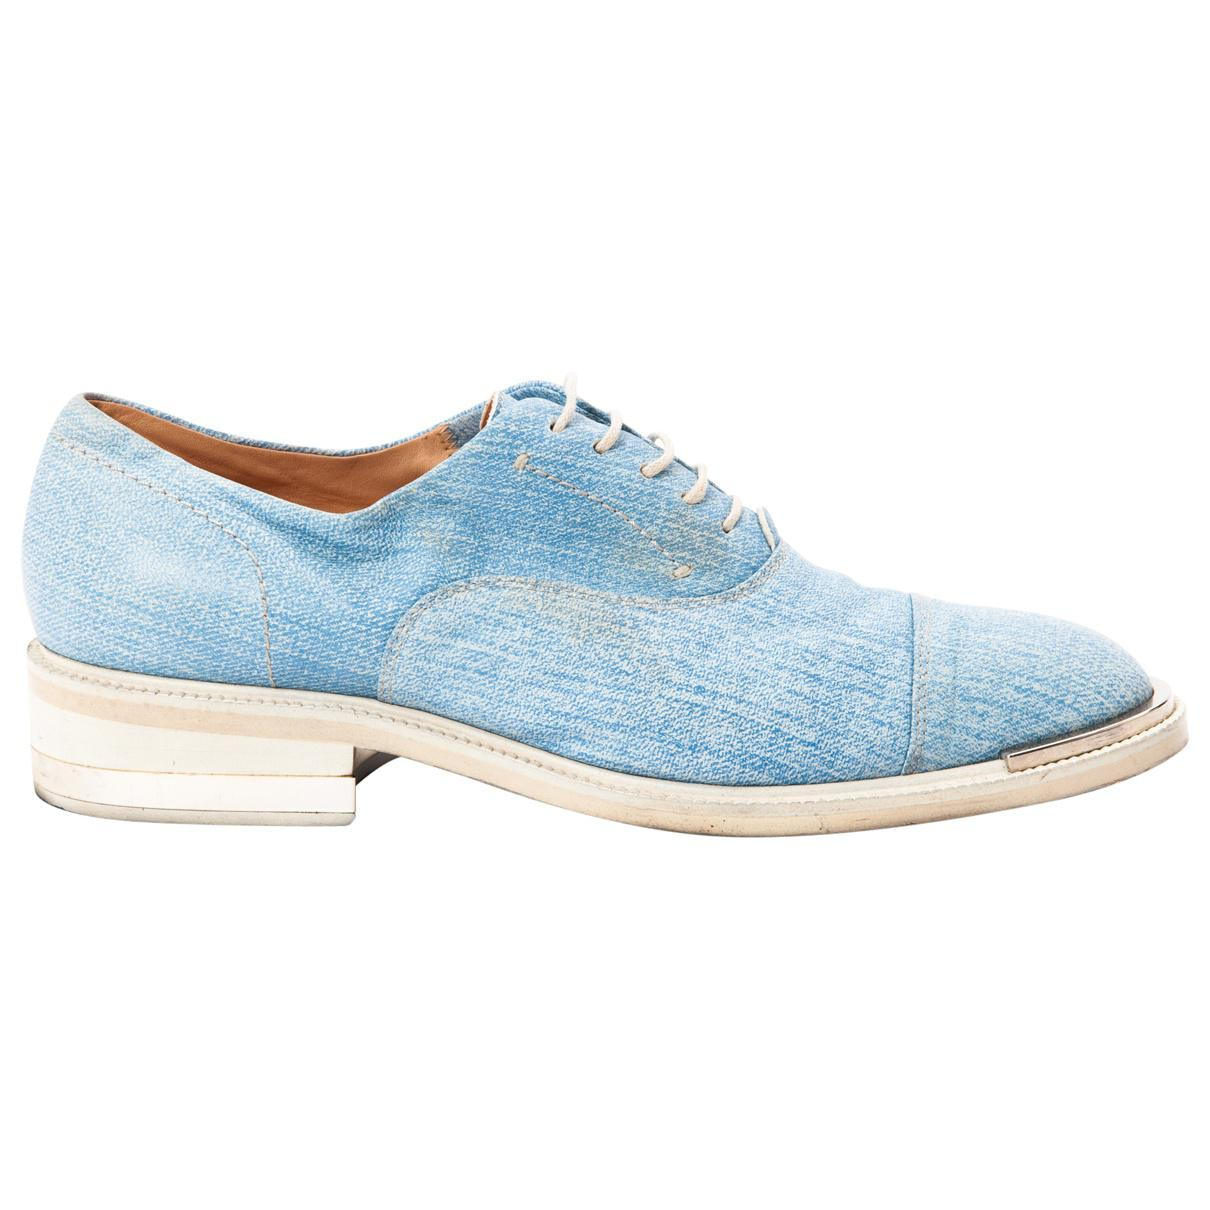 Lowest Price For Sale Pre-owned - Cloth lace ups Barbara Bui Cheap Sale Sneakernews Discount Outlet Outlet View Countdown Package Cheap Price iCSVnaA